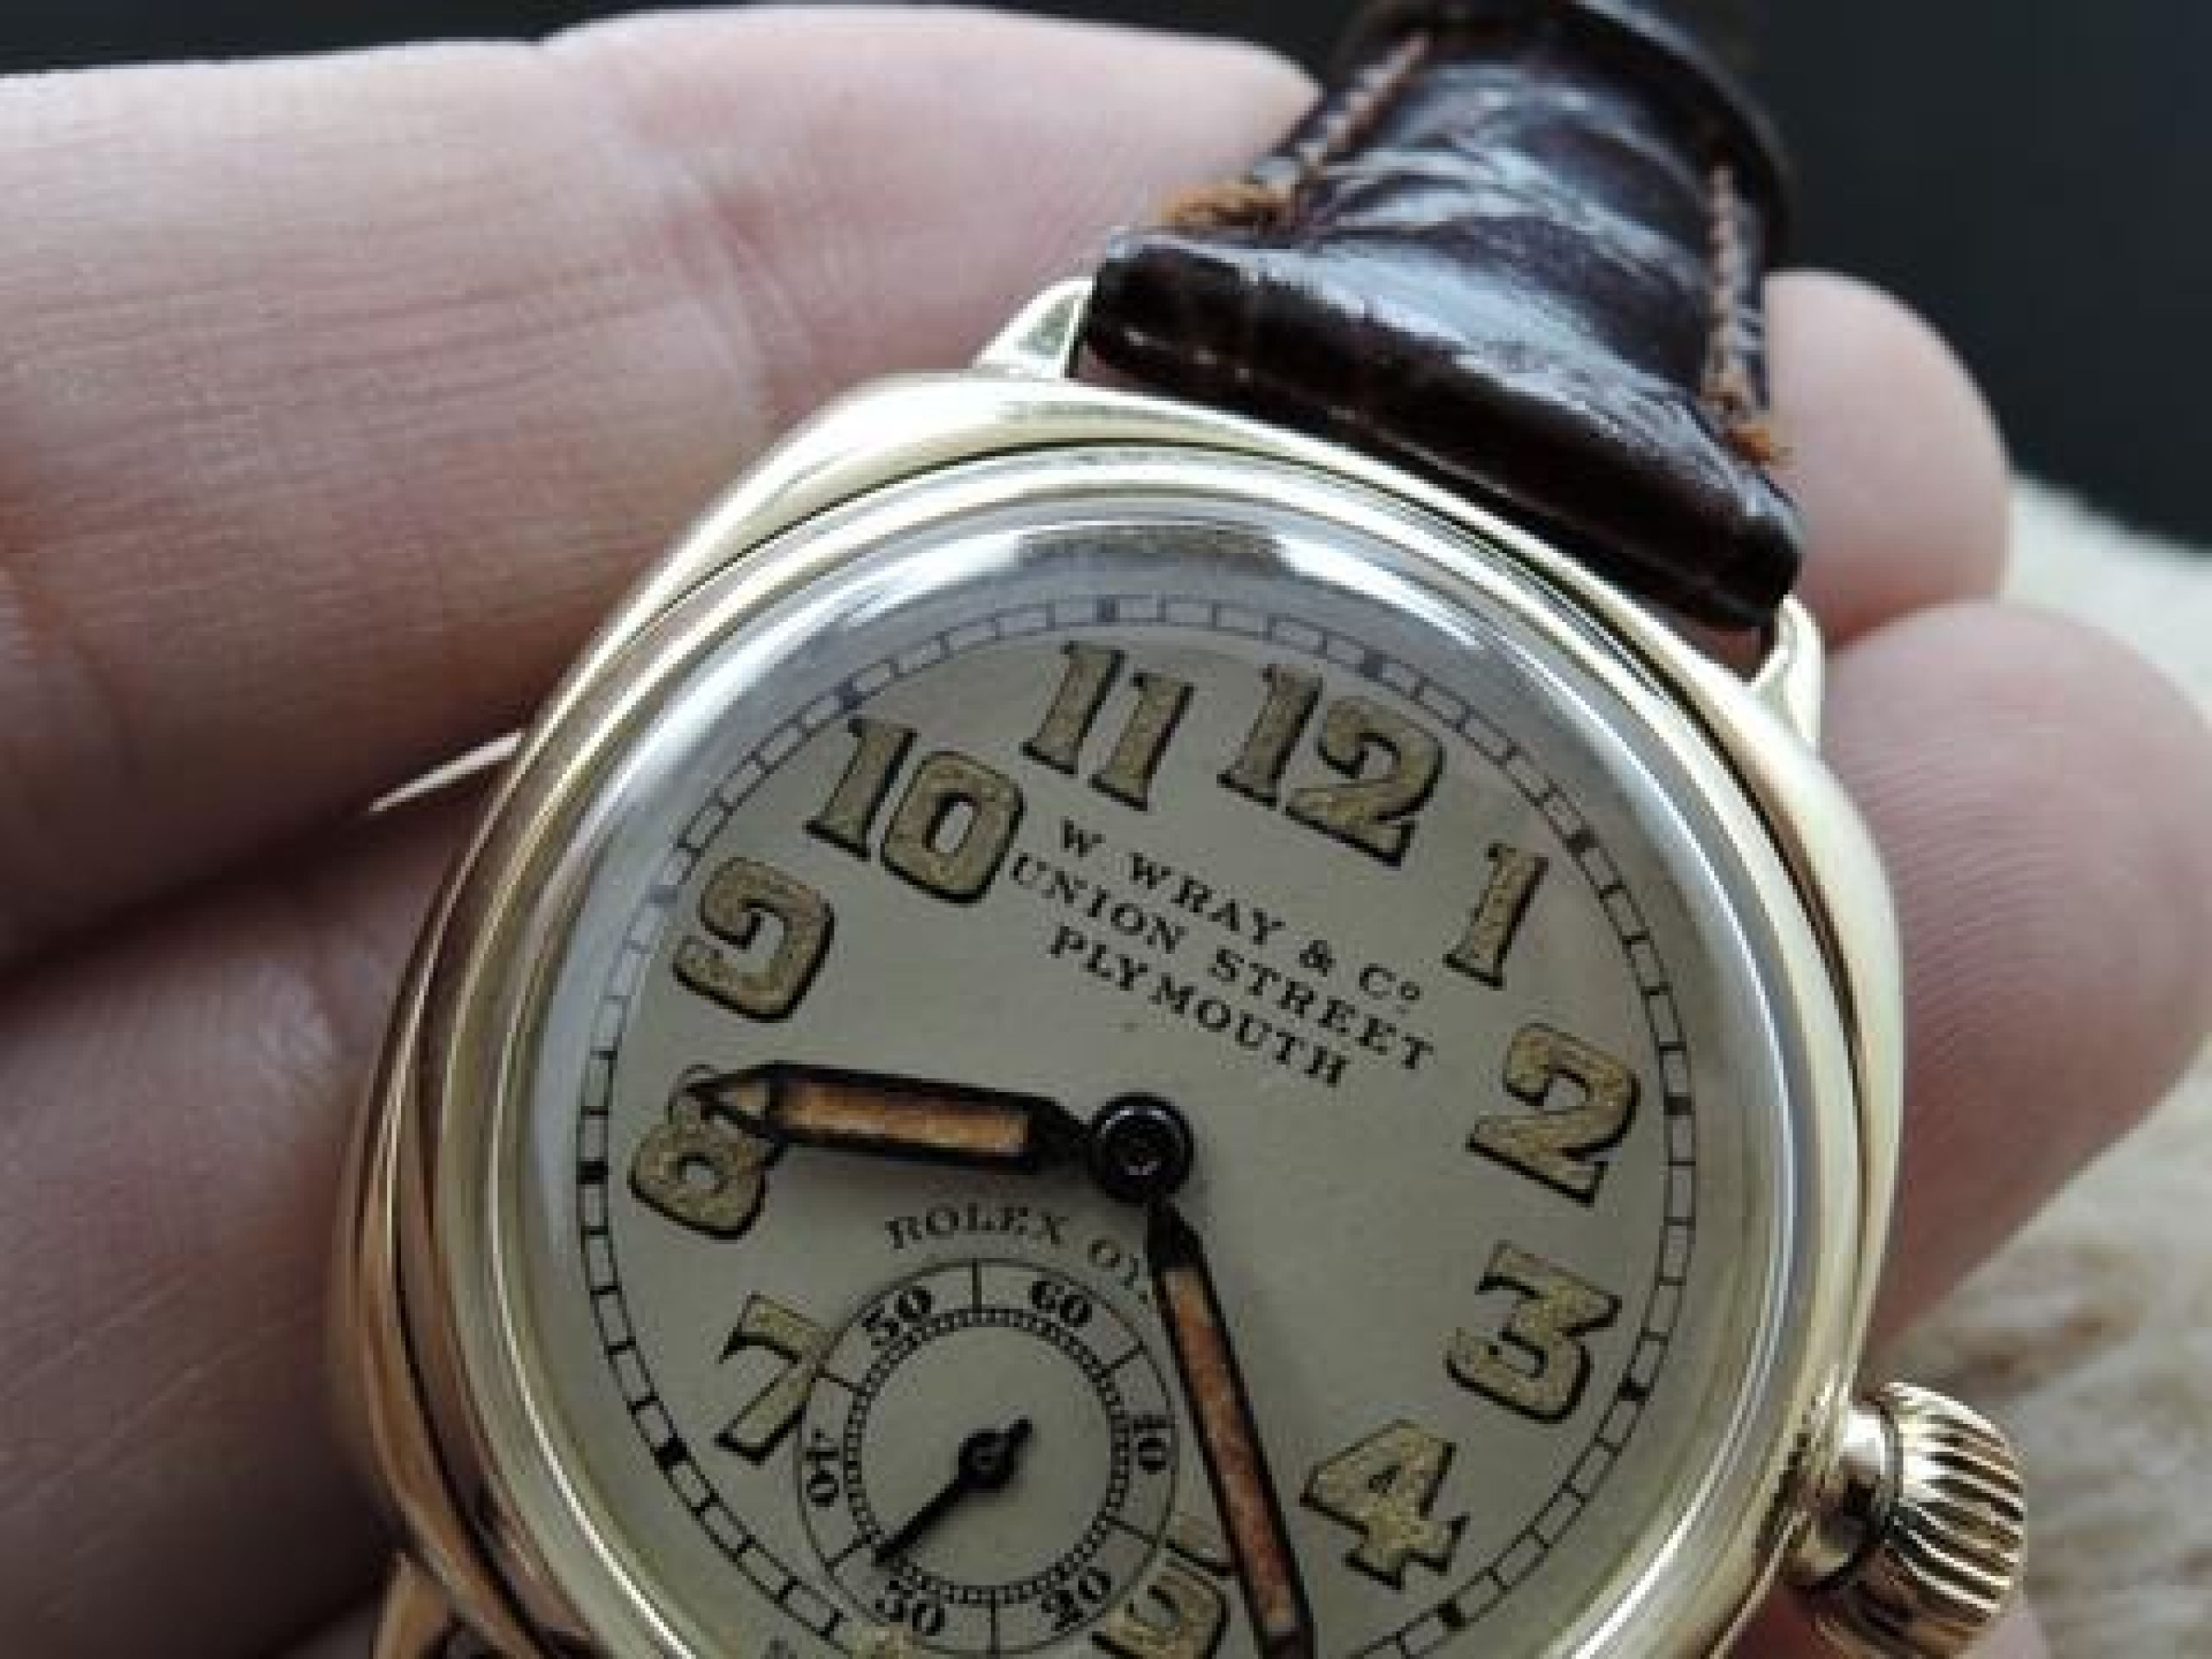 1937 ROLEX OYSTER 9K YELLOW GOLD CUSHION CASE WITH YELLOWISH ARABIC DIAL